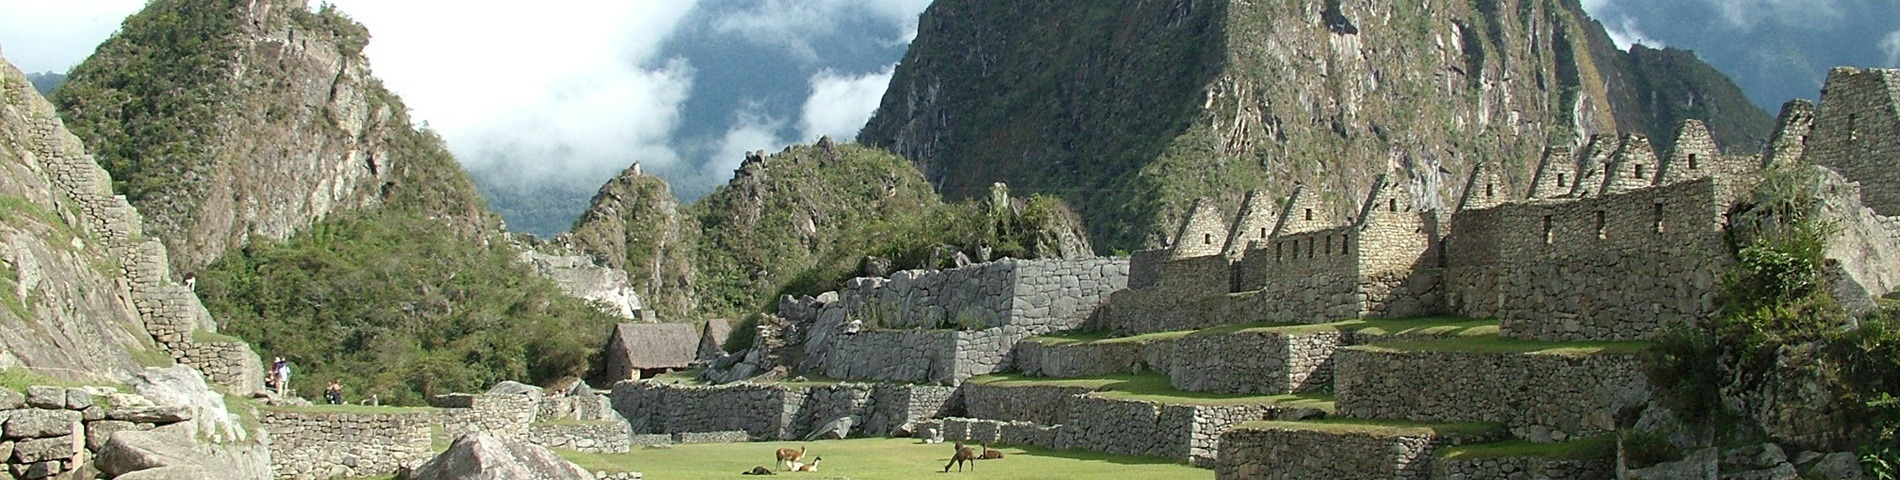 cuzco senior singles Singles vacations, weekends and trips are you in you 40's, 50's 60's+  90% of our singles travel on our group vacations alone  visit ancient sites of cusco .